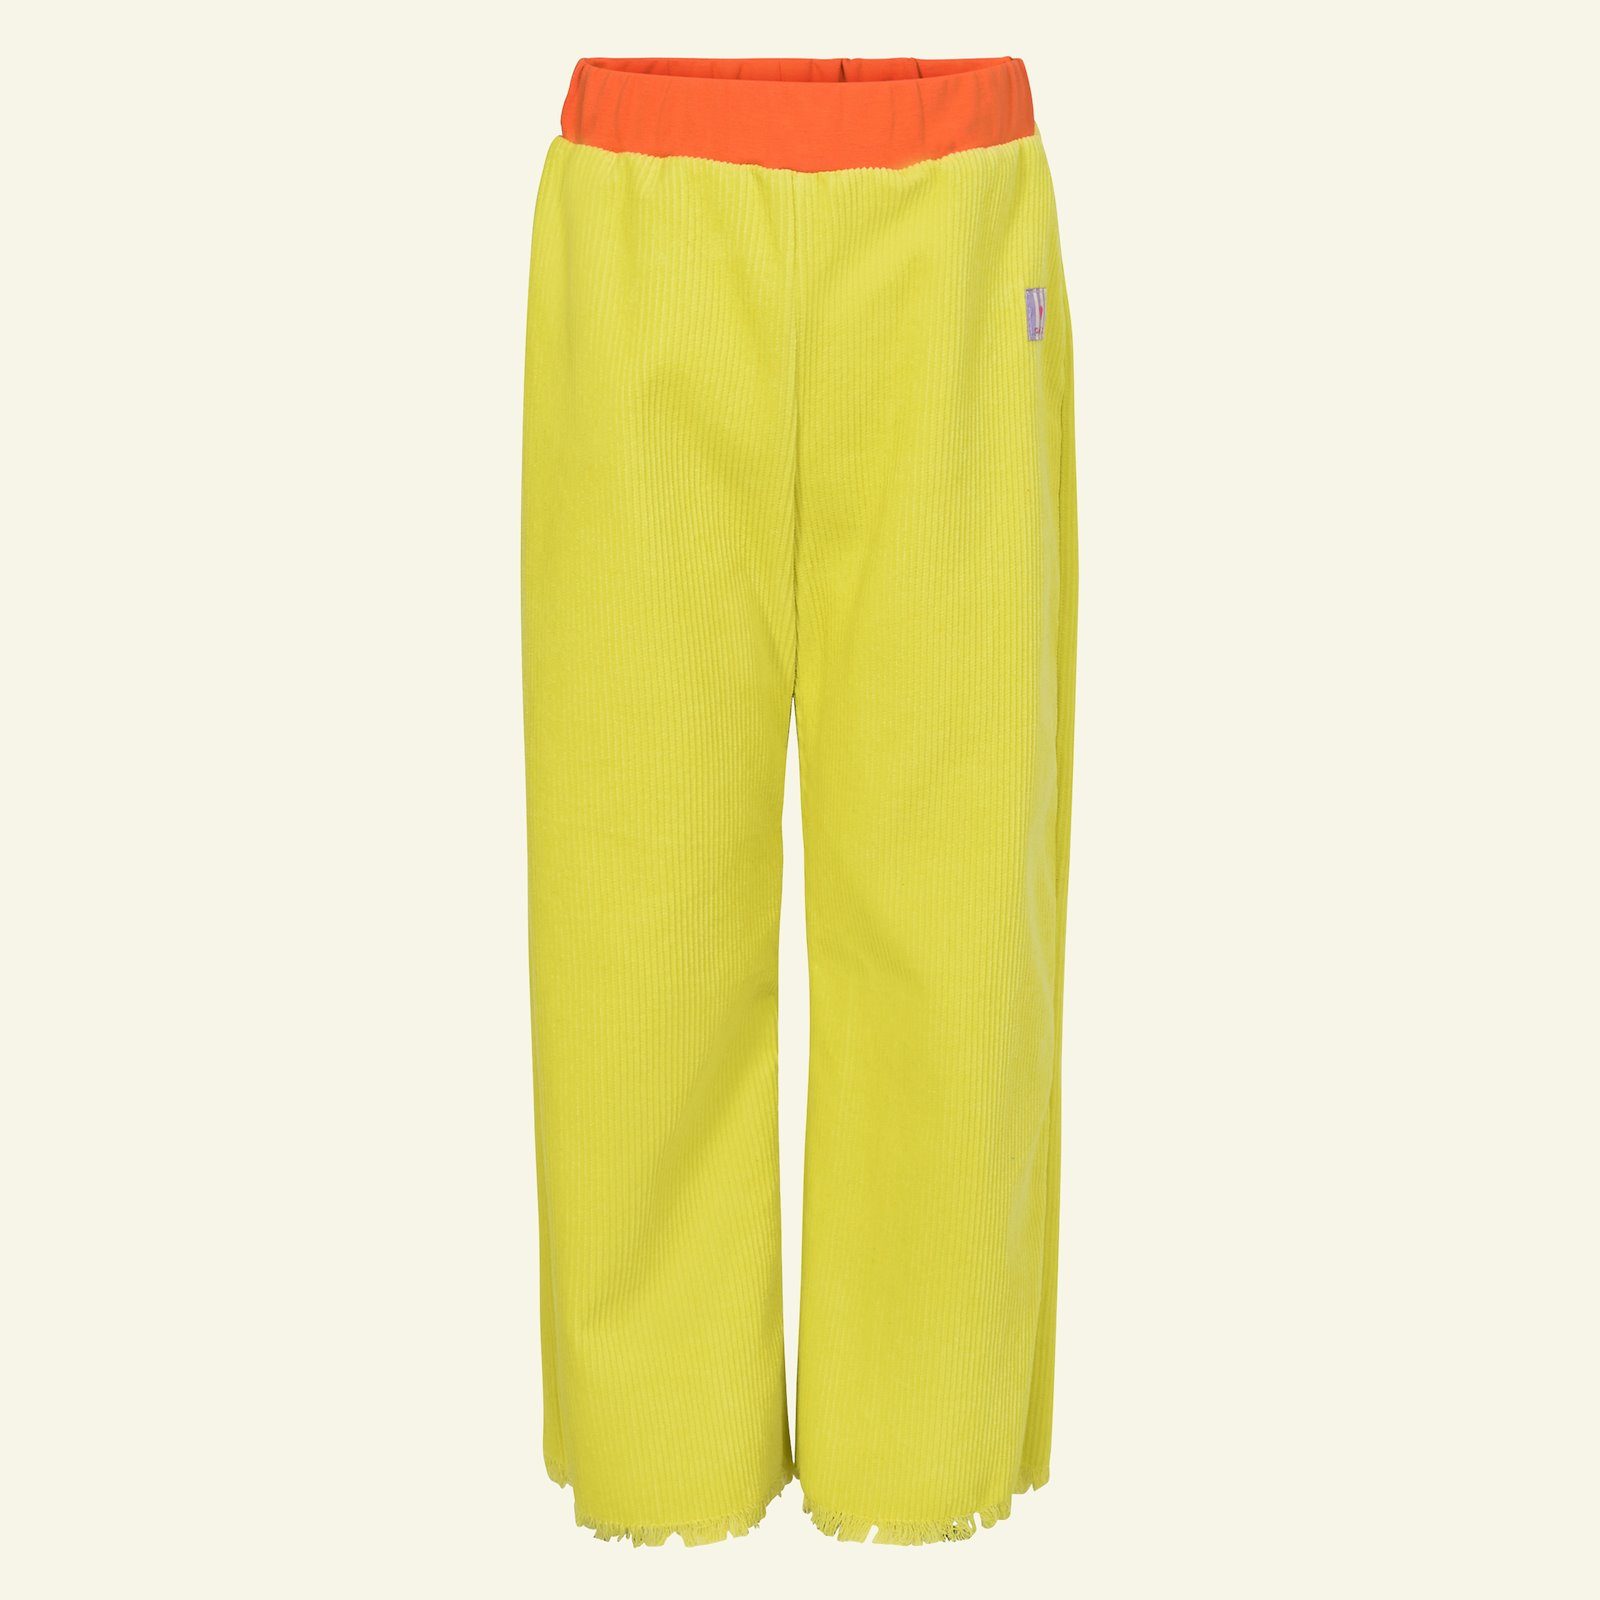 High waist and wide lege trouser, 110/5y p60034_430822_272319_26455_sskit